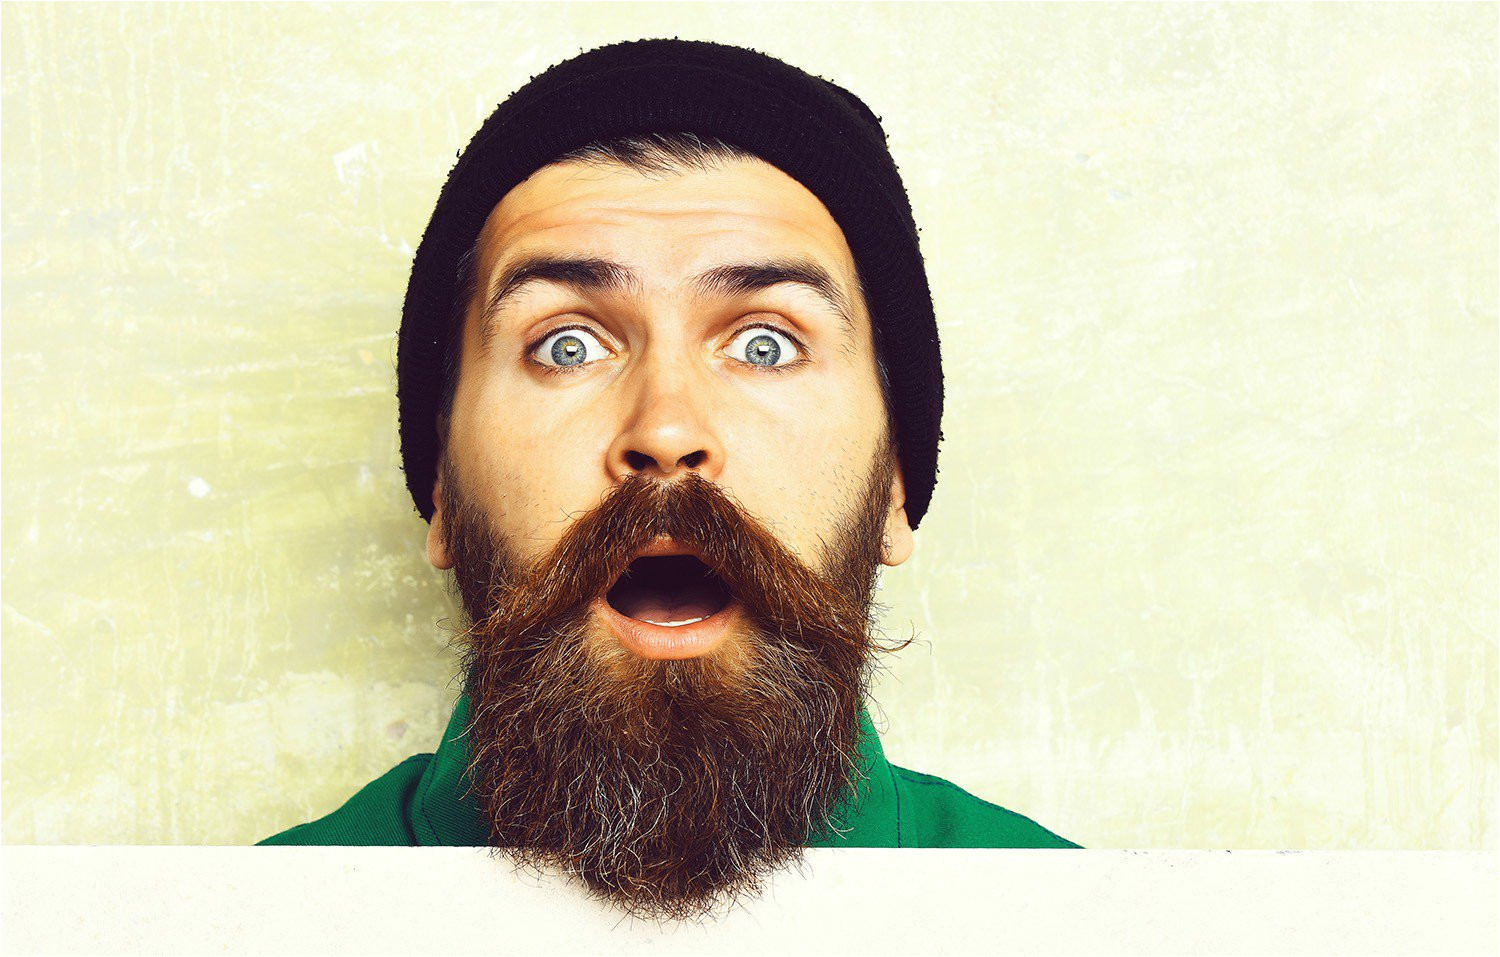 How to Make Beard Hair soft Like Head Hair 10 Ways You Can Fix A Patchy Beard Make It Thick Dense Full